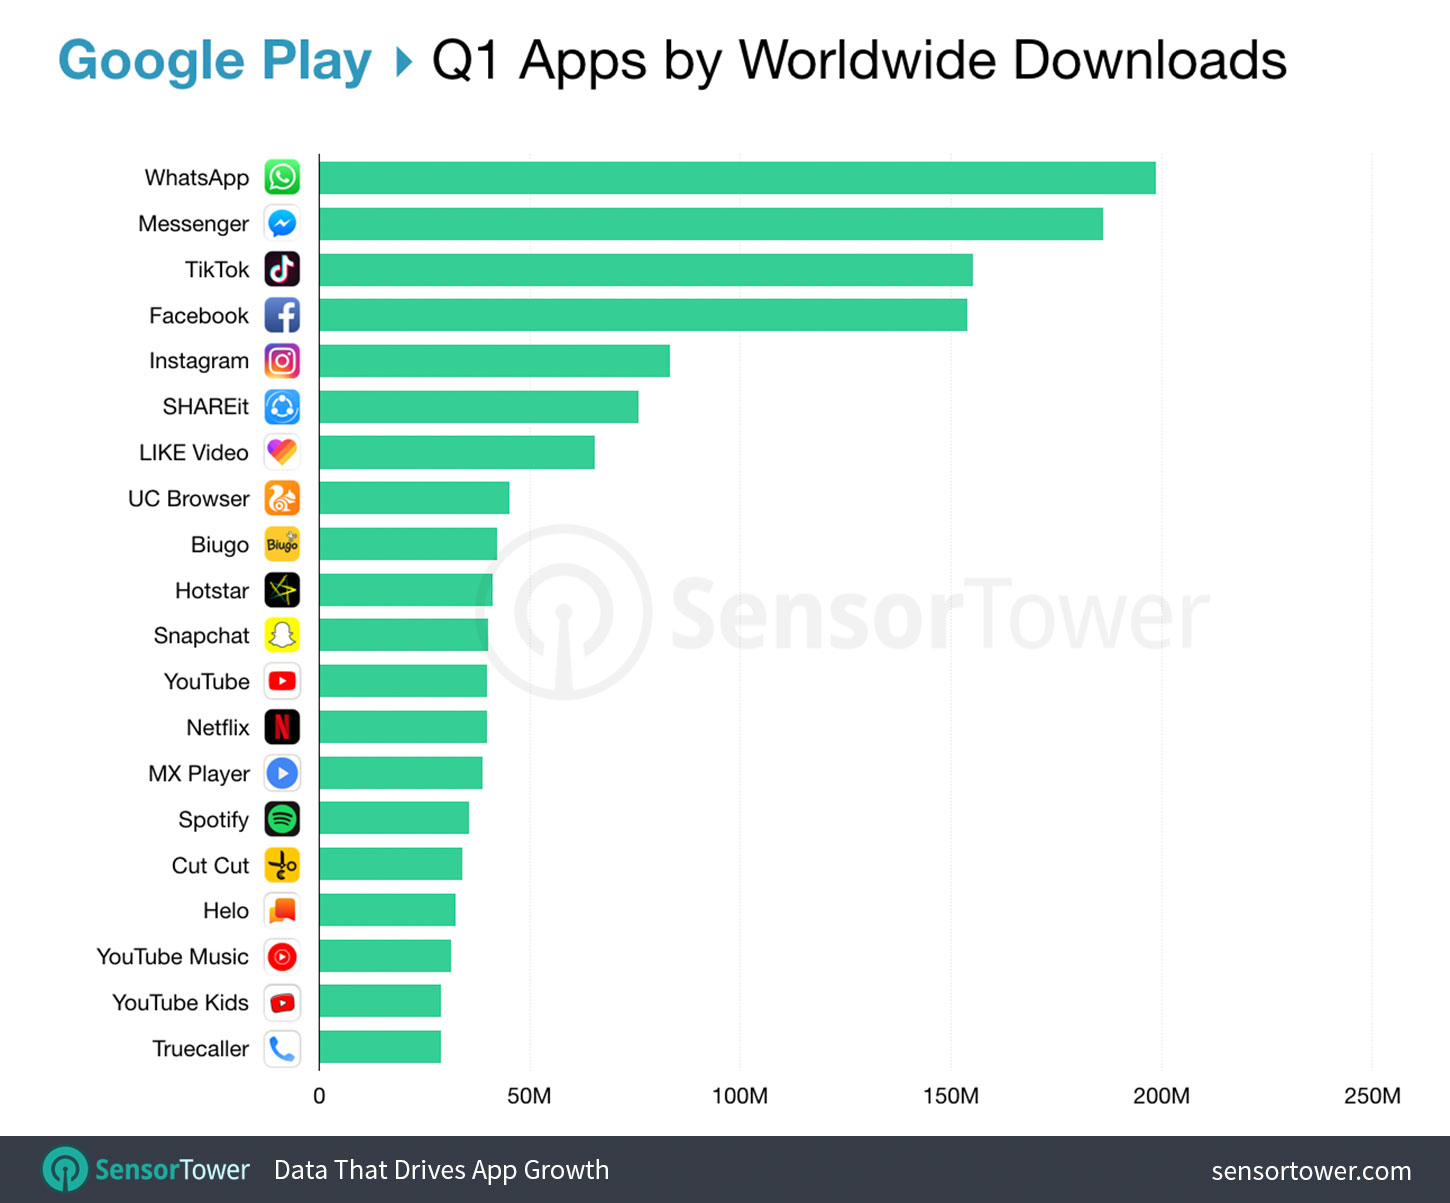 Top Apps Worldwide for Q1 2019 by Downloads